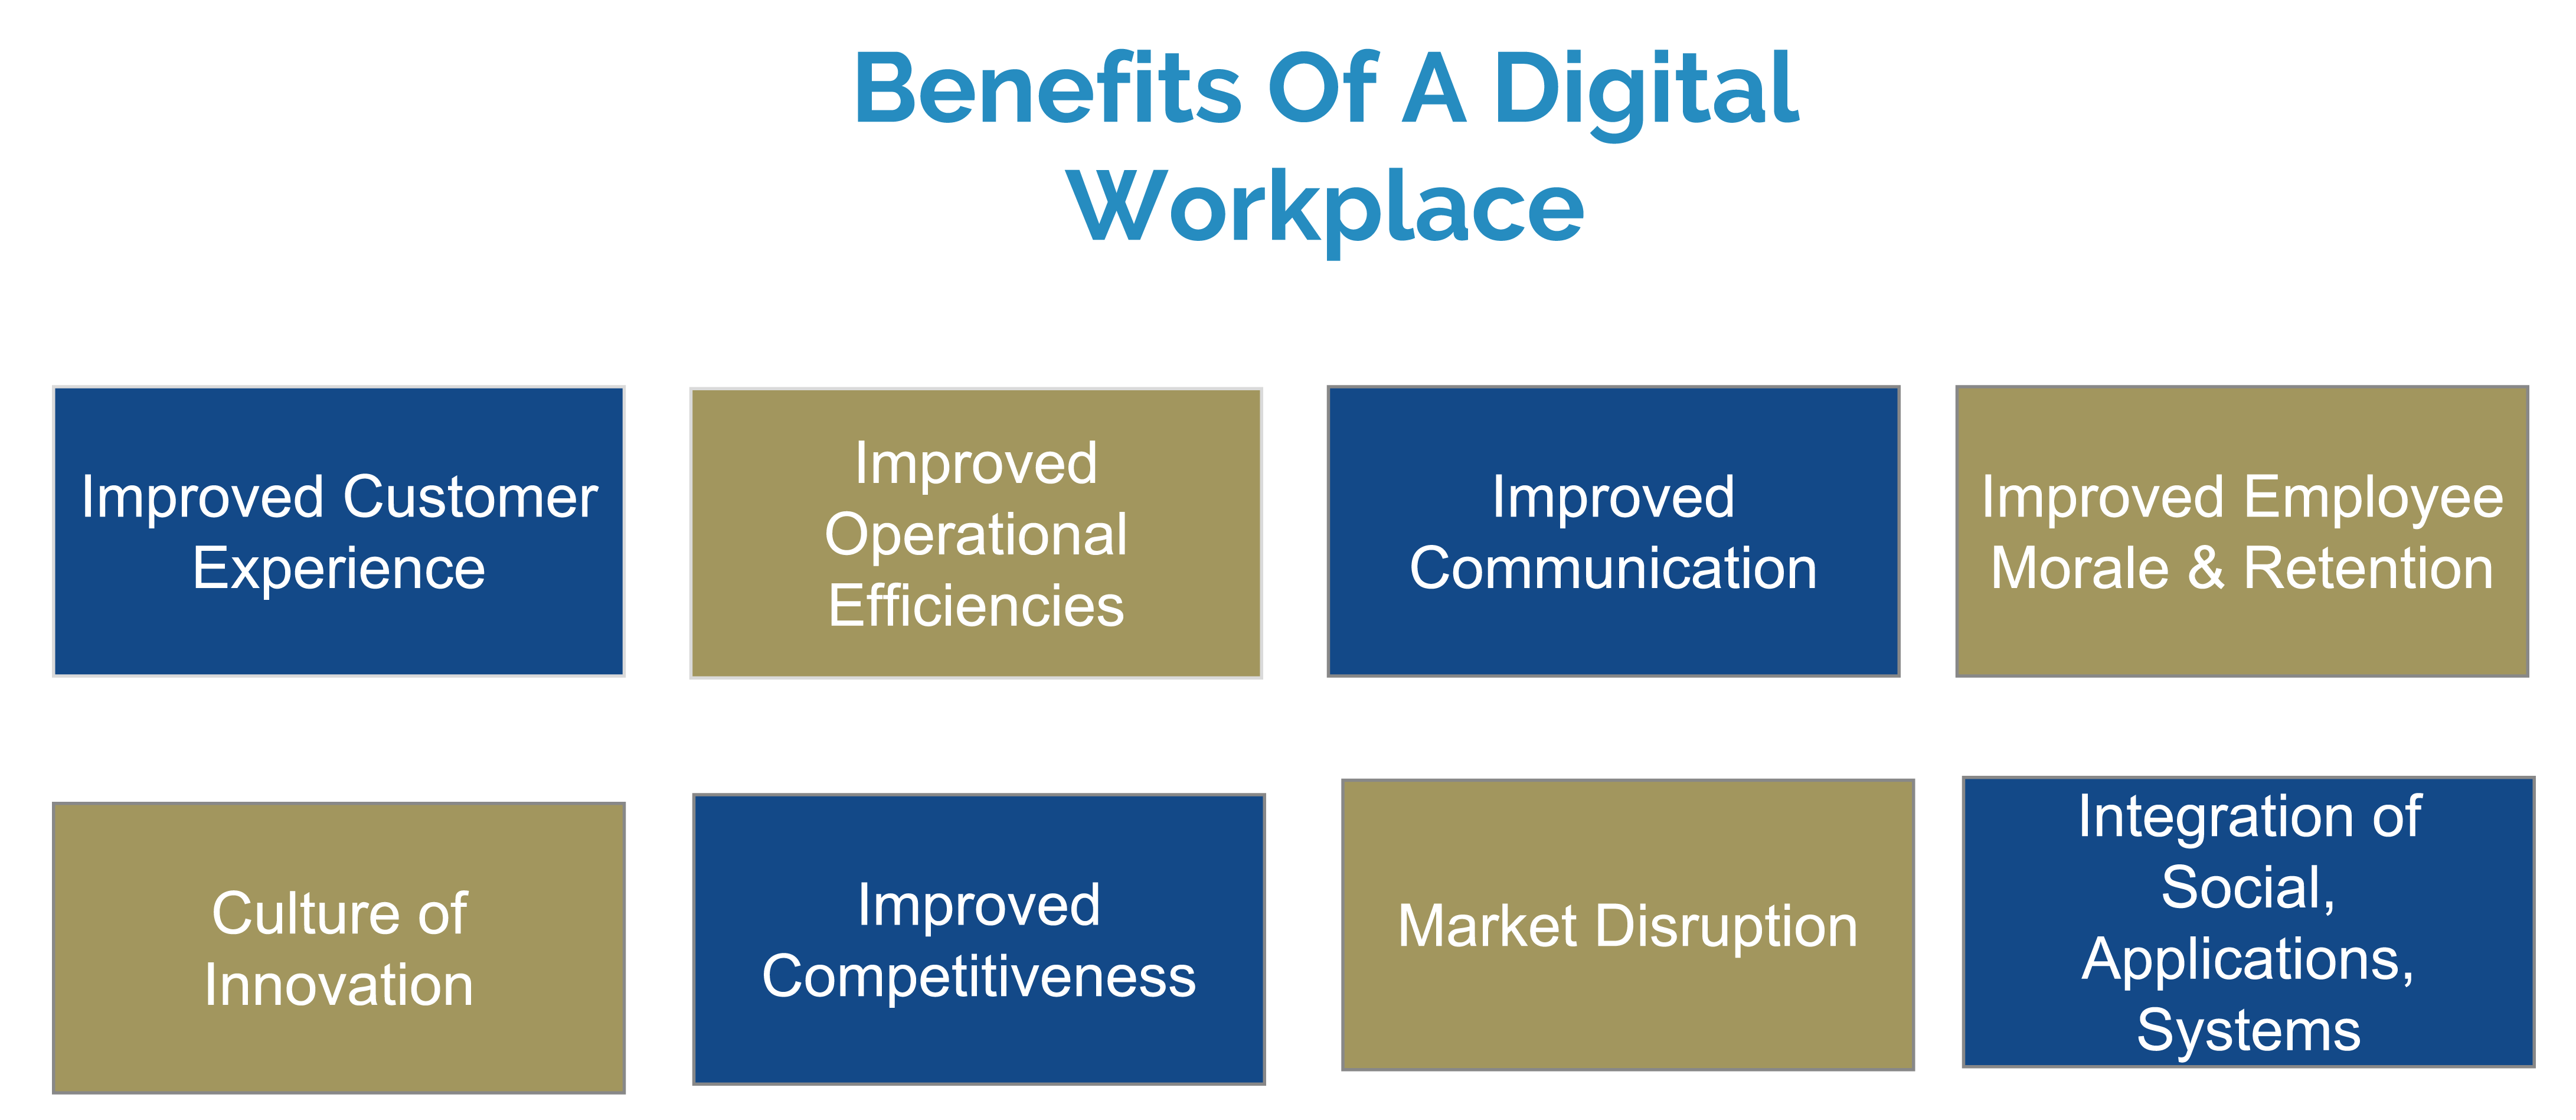 Benefits of a Digital-Workplace